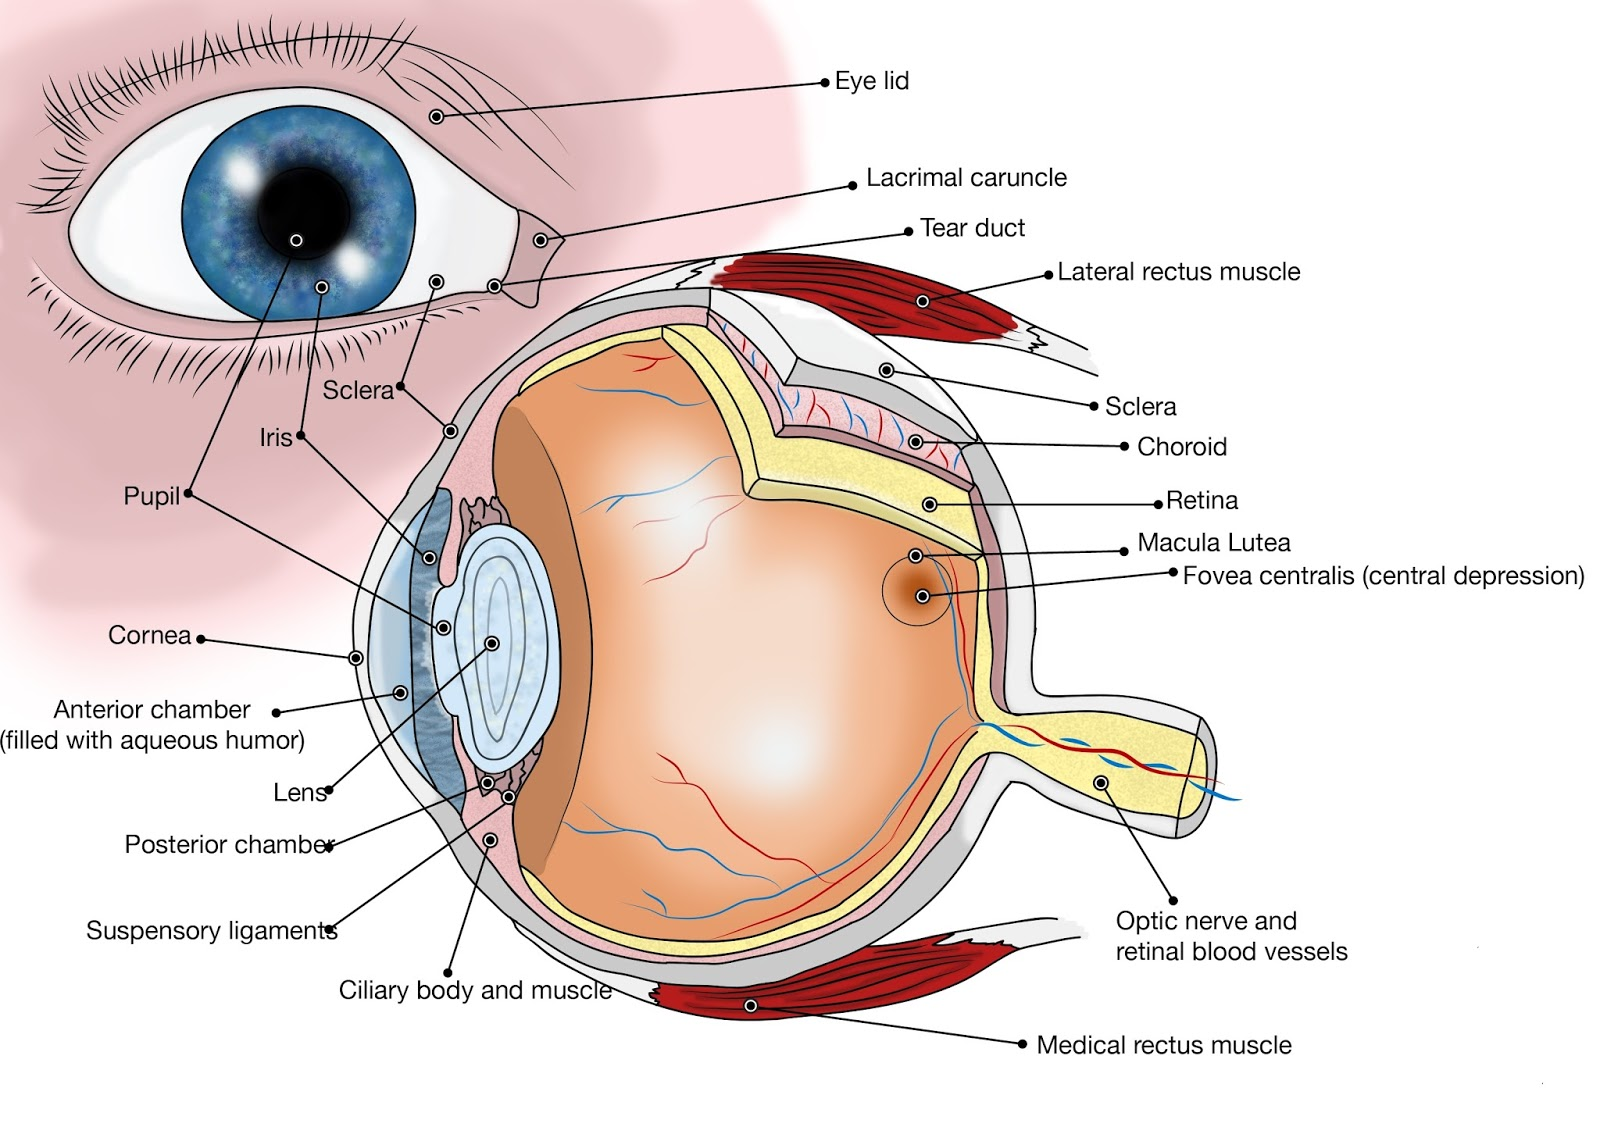 How Amazing our body is: Eye, Vision Organ